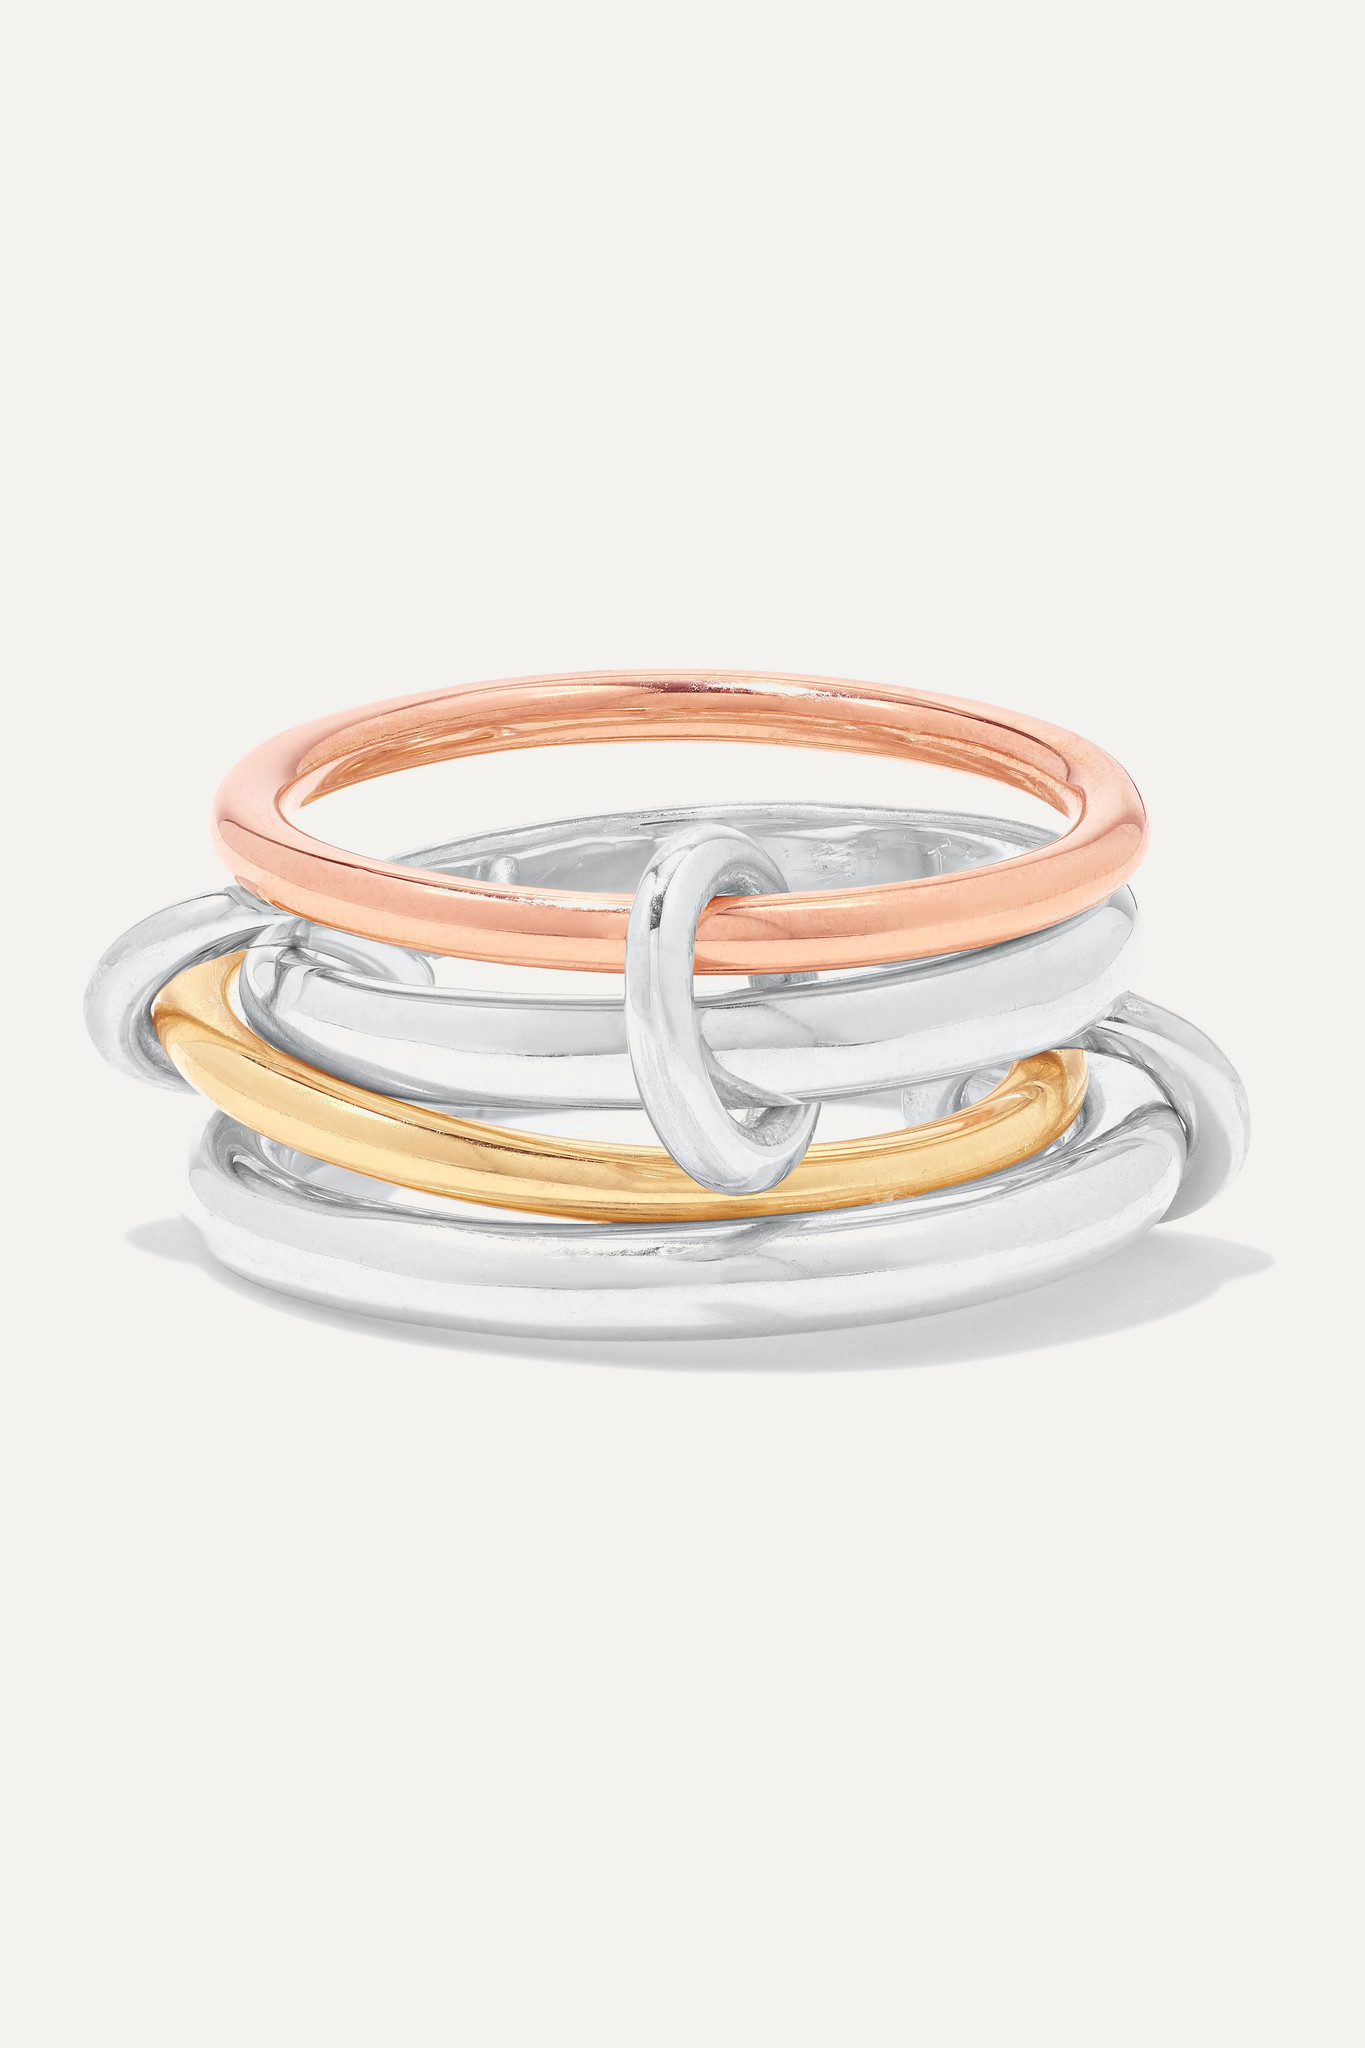 SPINELLI KILCOLLIN - Hyacinth Set Of Four 18-karat Yellow And Rose Gold And Sterling Silver Rings -